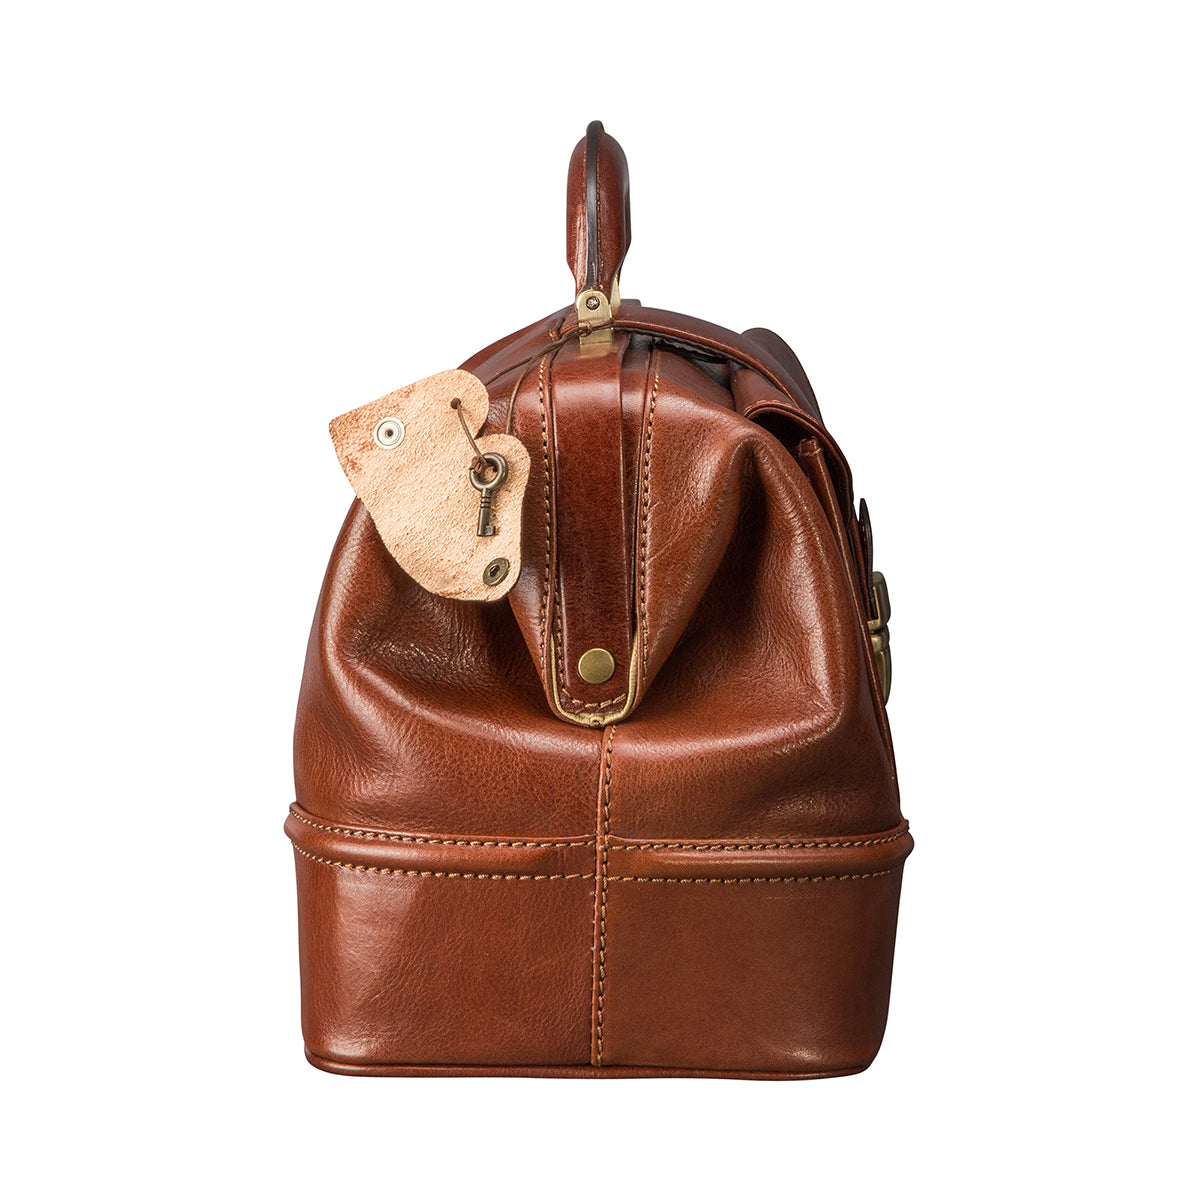 Image 3 of the 'Donnini' Chestnut Veg-Tanned Leather Doctor's Bag